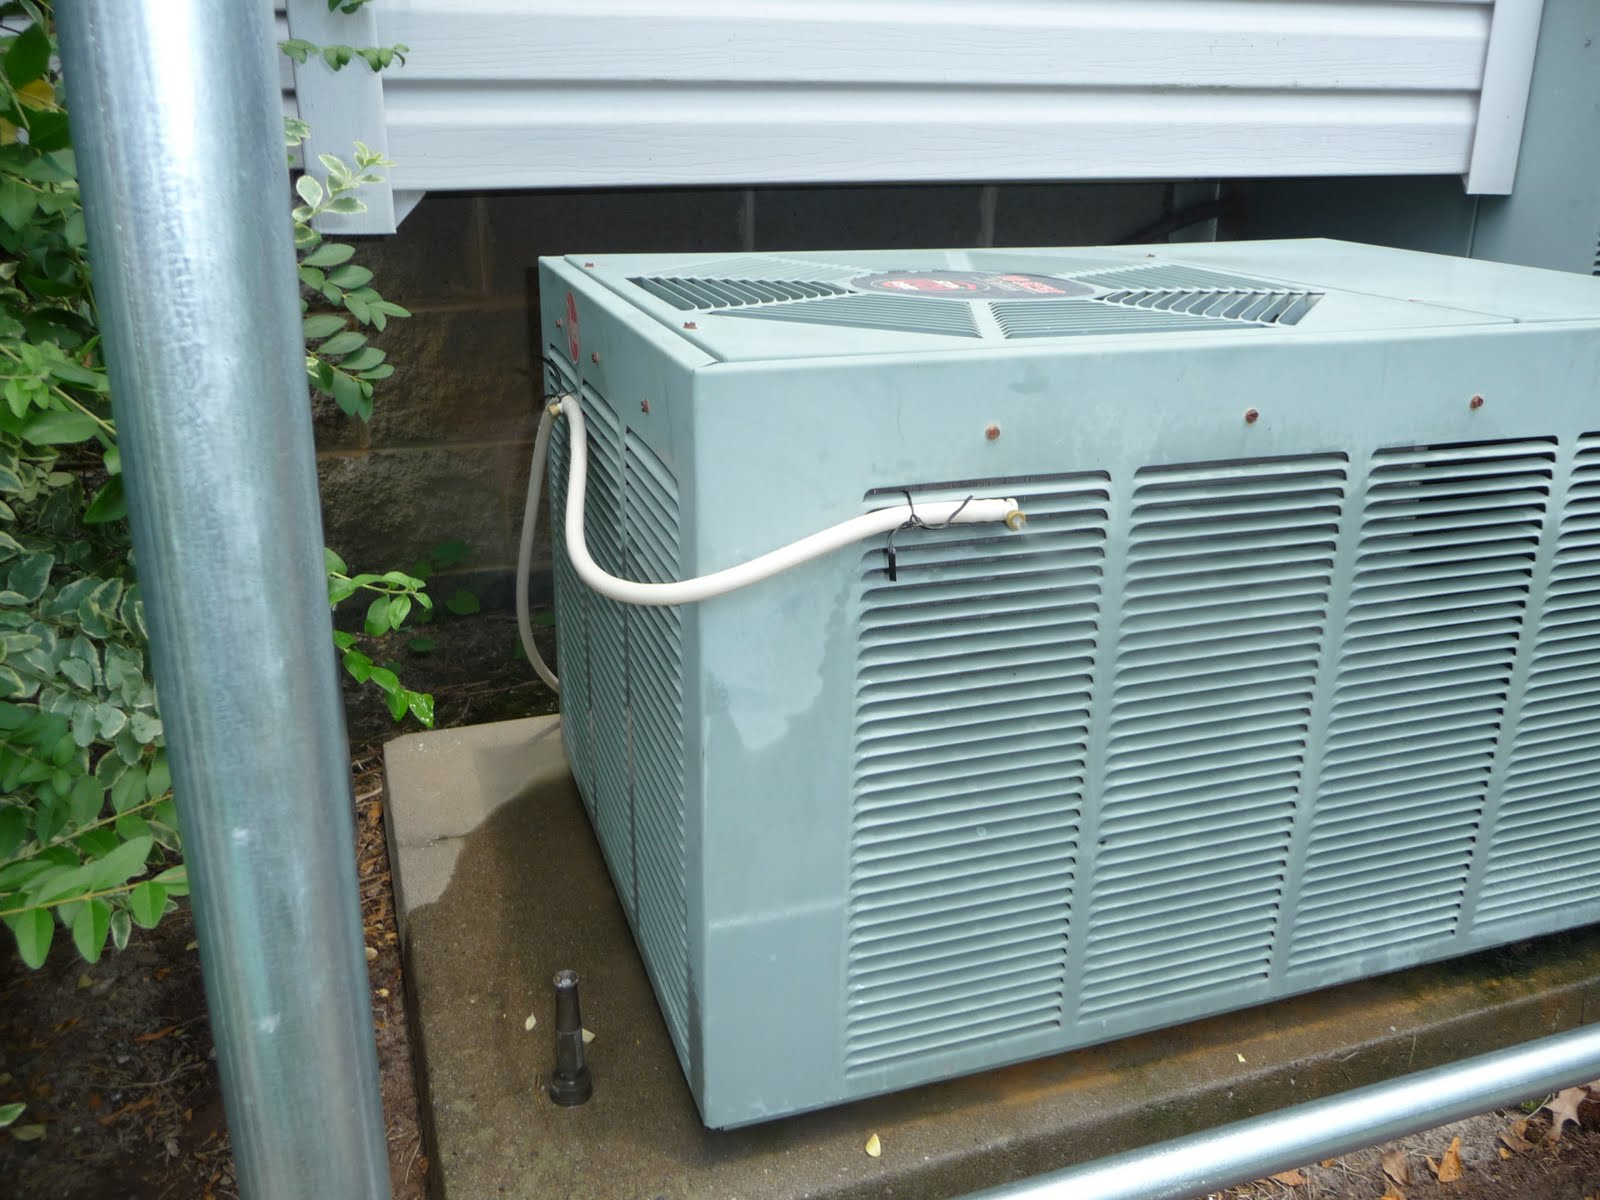 Misting Systems For Ac Units : Fortino projects ac unit